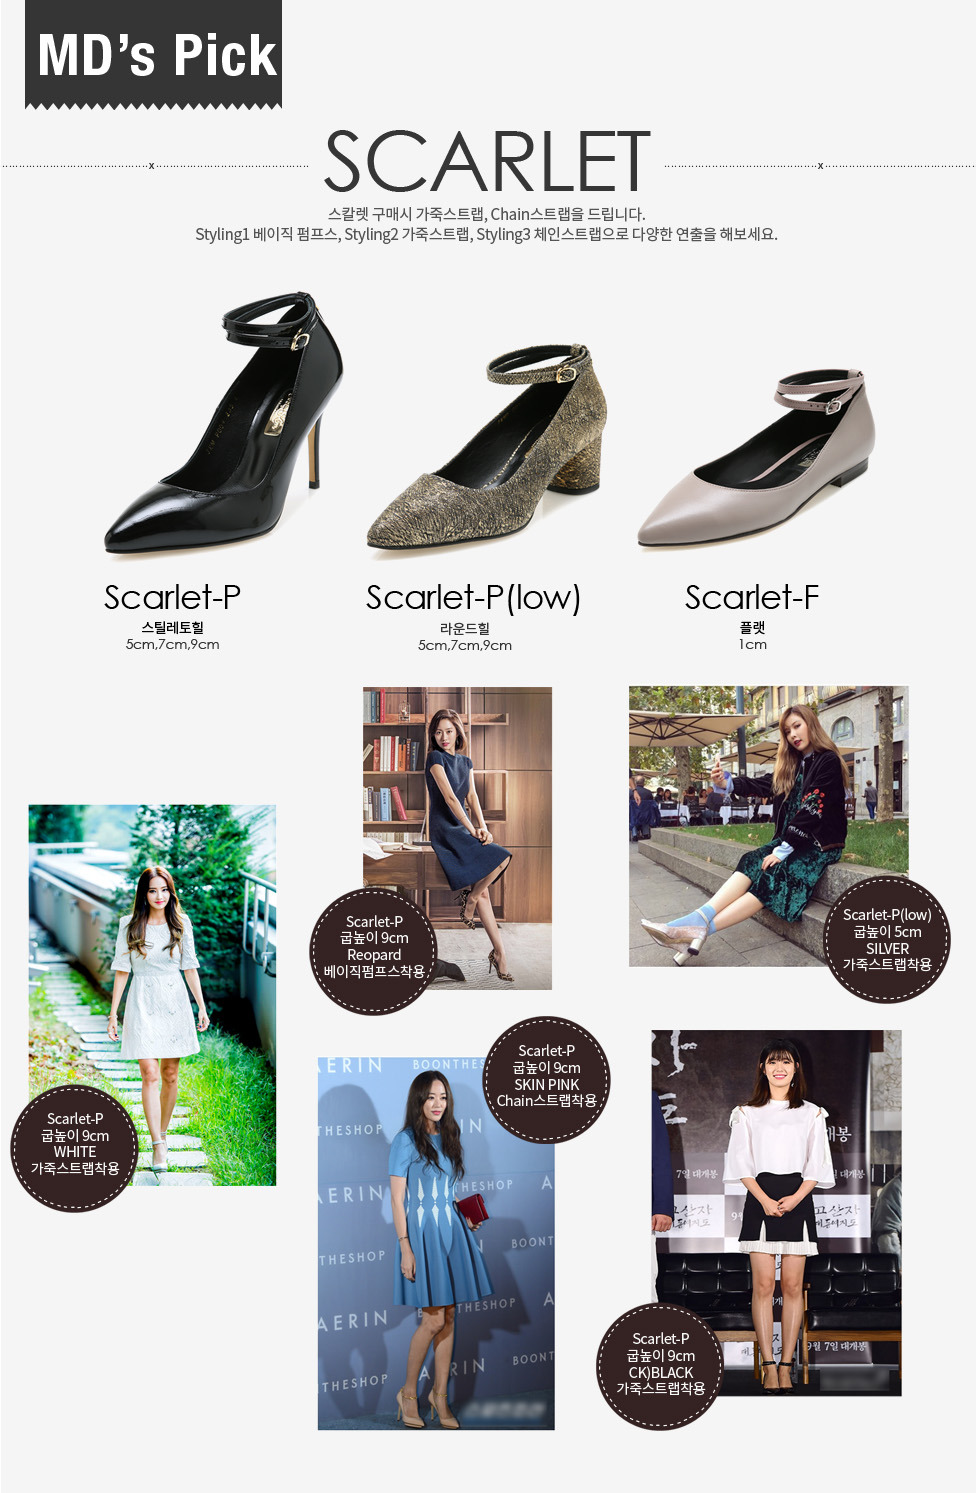 MD's pick. 9 item link for shoes